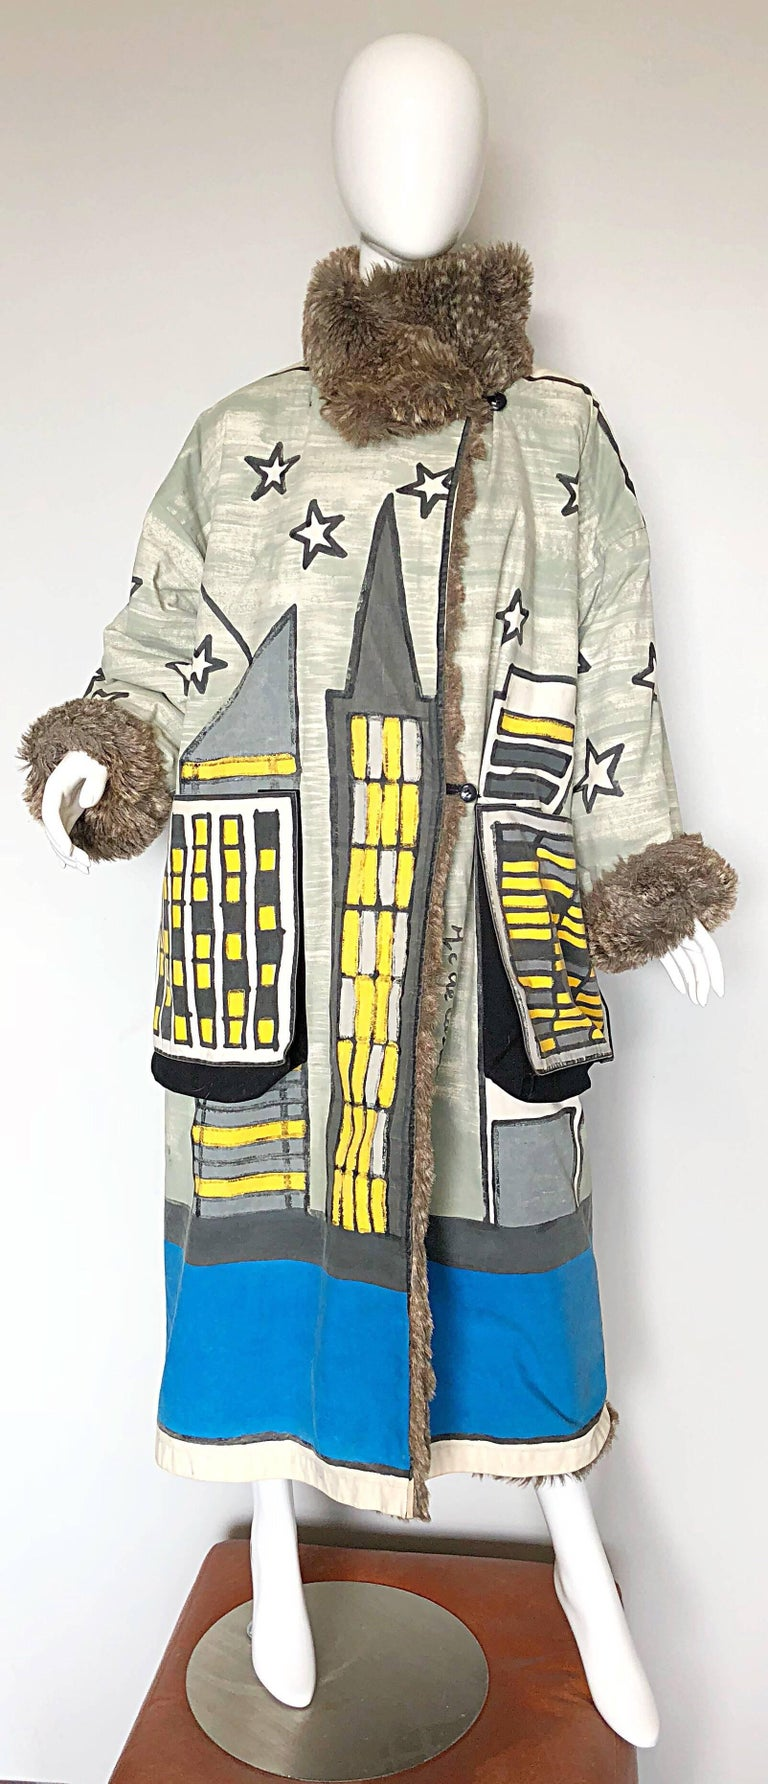 Fabulous one of a kind musuem piece vintage  JEAN CHARLES de CASTELBAJAC hand painted oversized reversible coat! Features a painted skyline with a moon, stars and UFO. Vibrant colors of blue, yellow, grey and white. Lining is a super soft gray faux